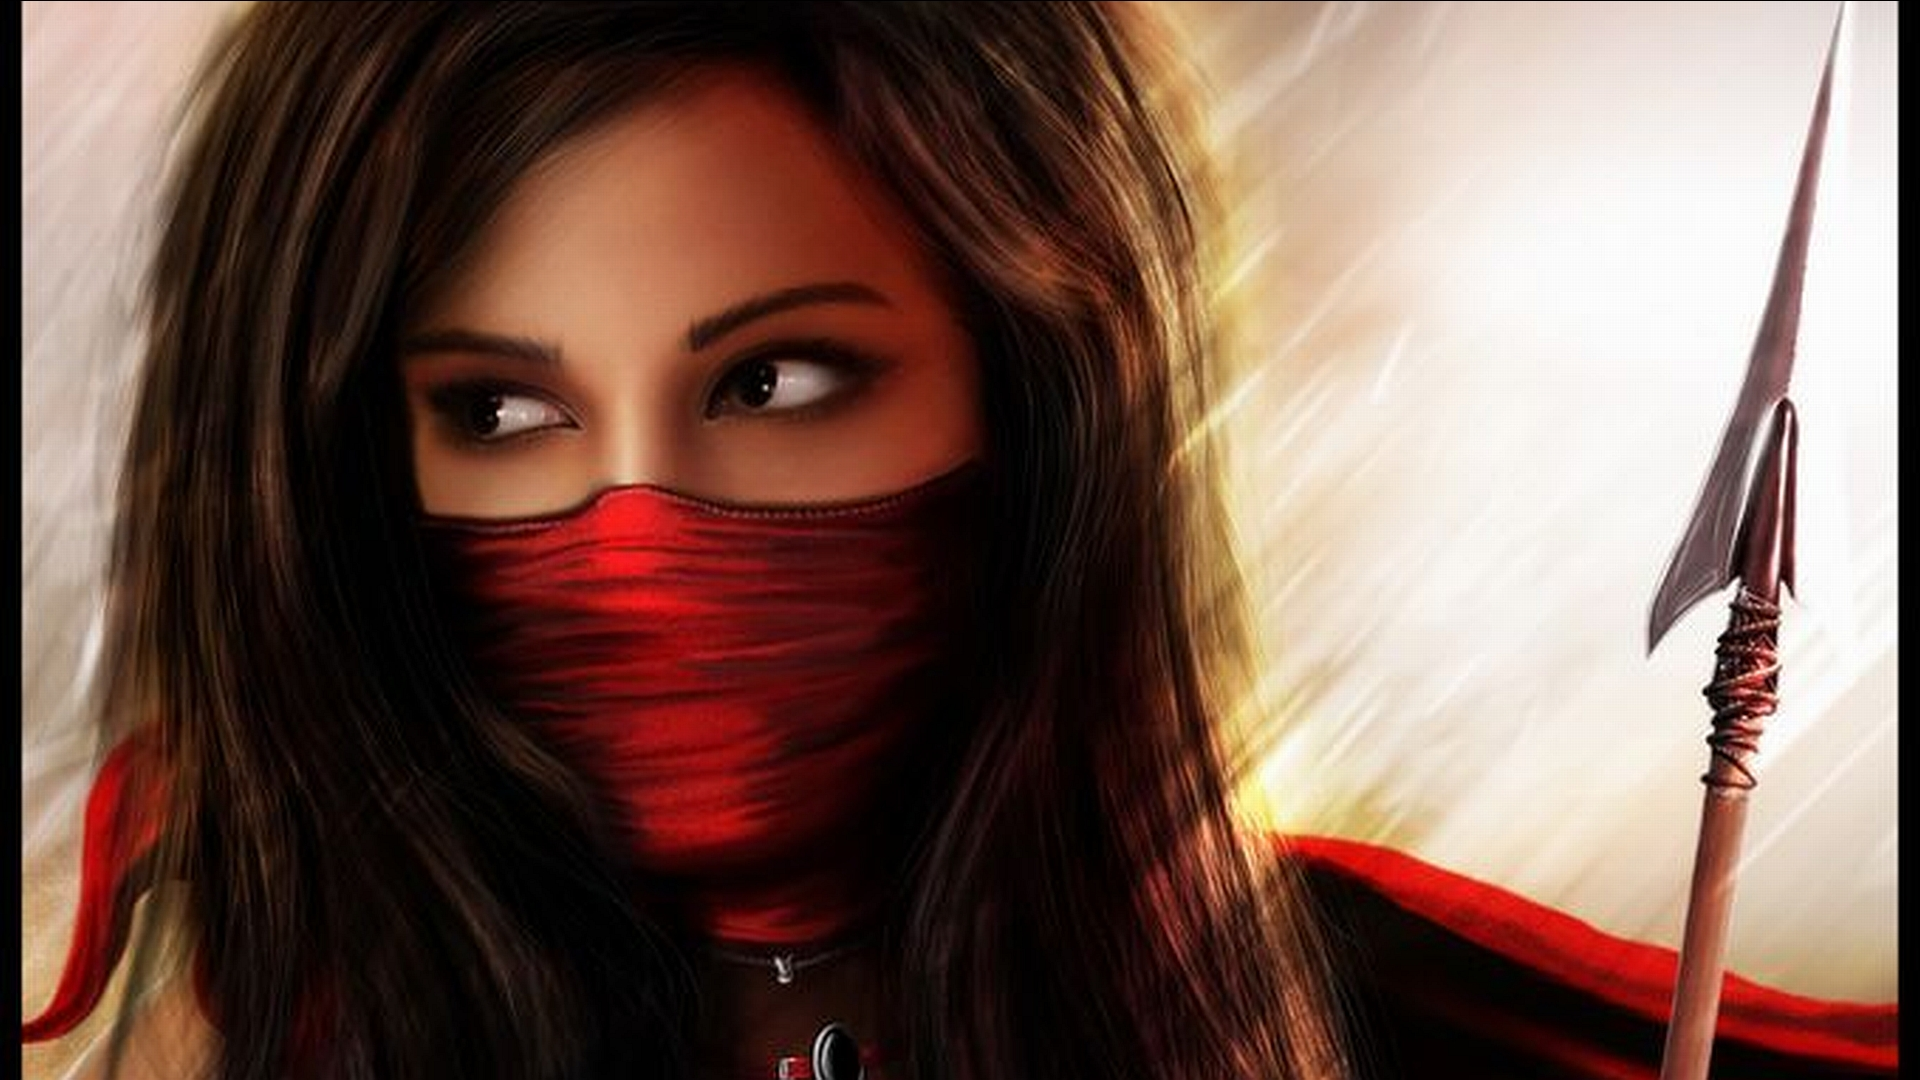 Women Warrior Computer Wallpapers Desktop Backgrounds 1920x1080 1920x1080